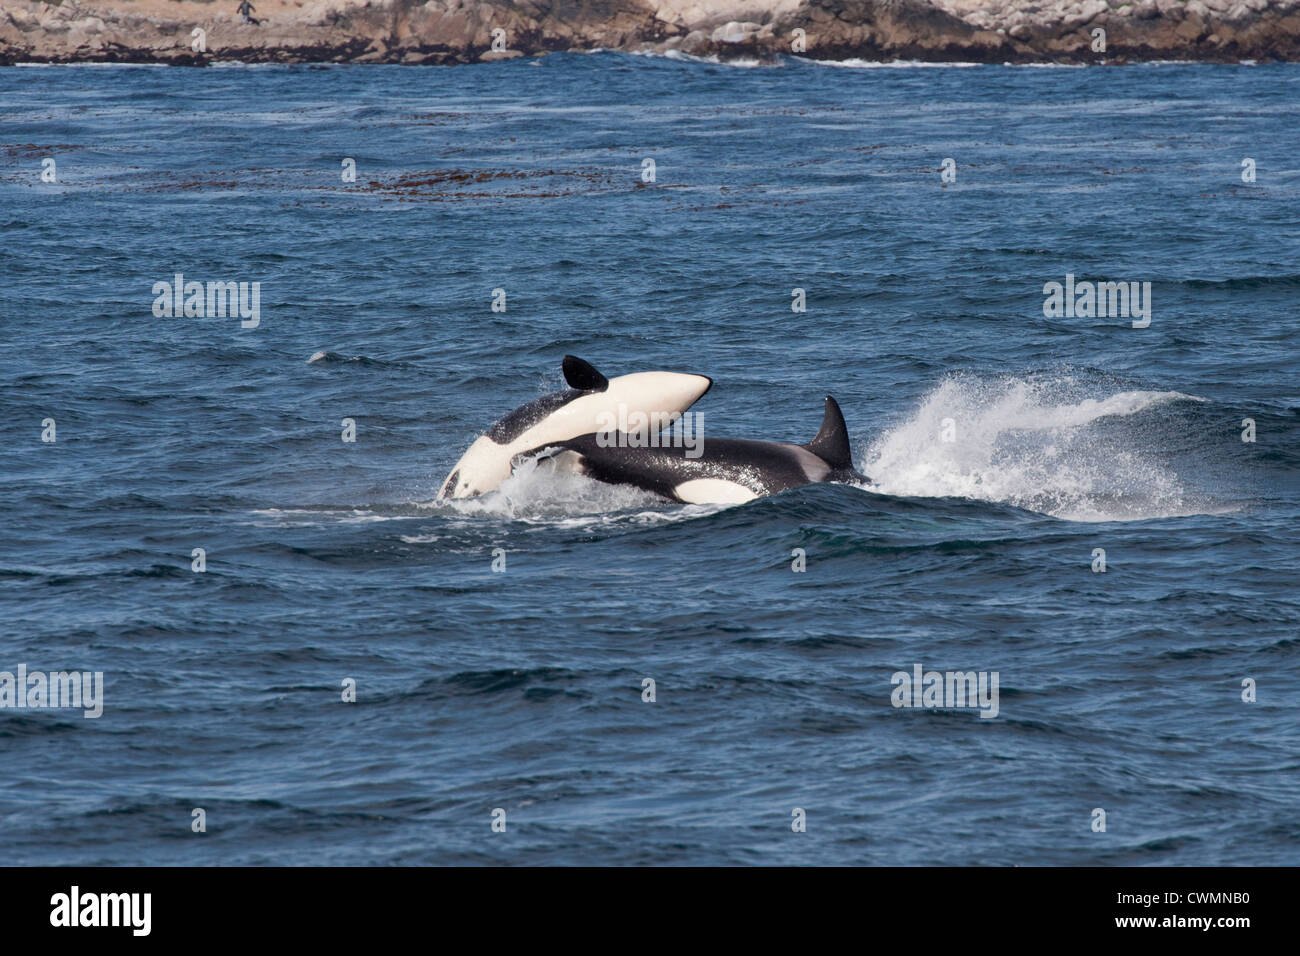 Two juvenile Transient Killer Whales or Orcas (Orcinus orca), breaching, Monterey, California, Pacific Ocean. - Stock Image